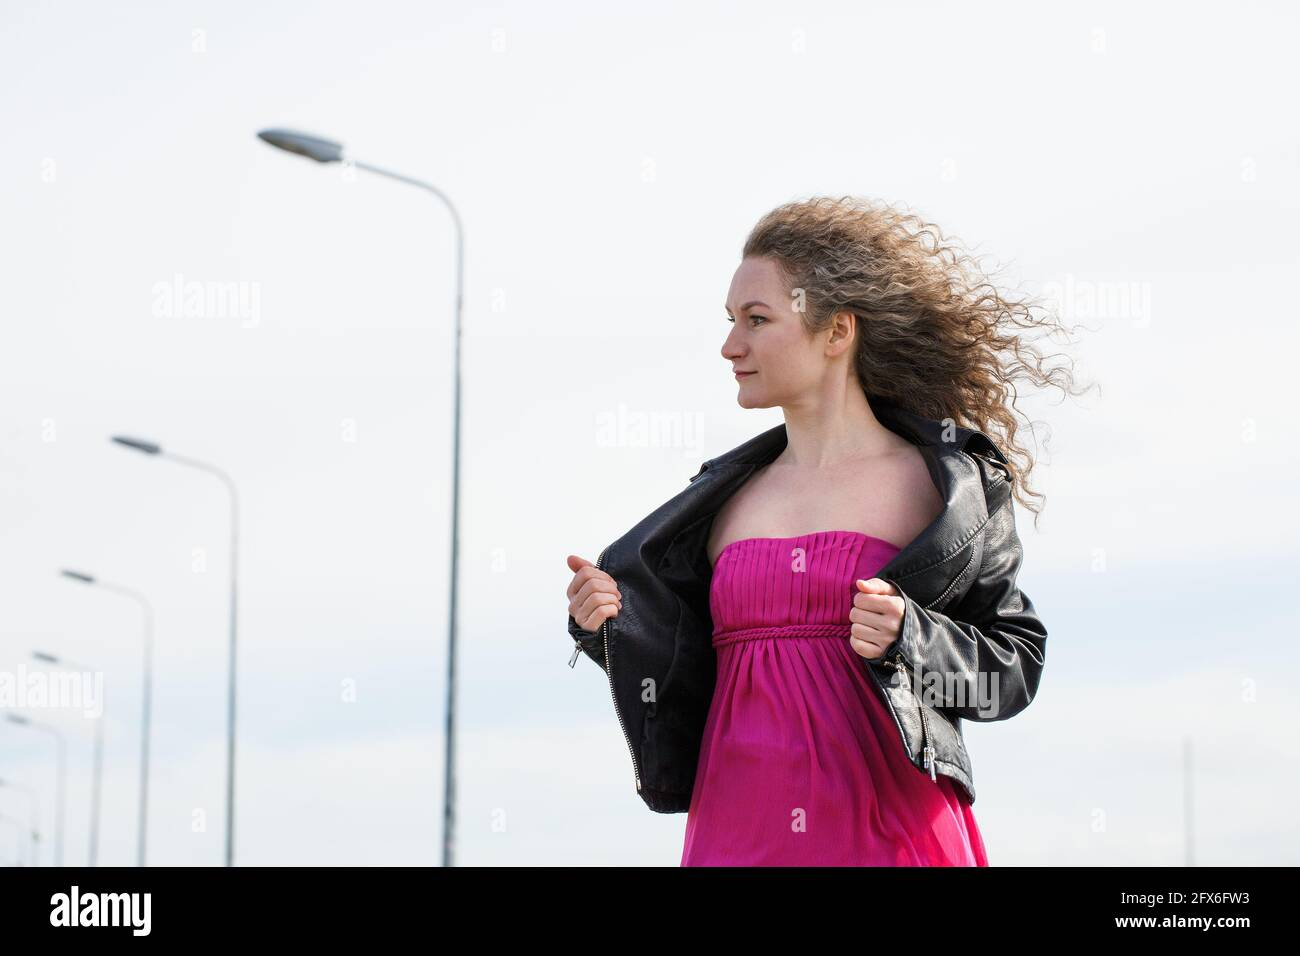 caucasian curly-haired woman in a black leather jacket and a pink dress against the background of a cloudy sky and pillars with lanterns Stock Photo